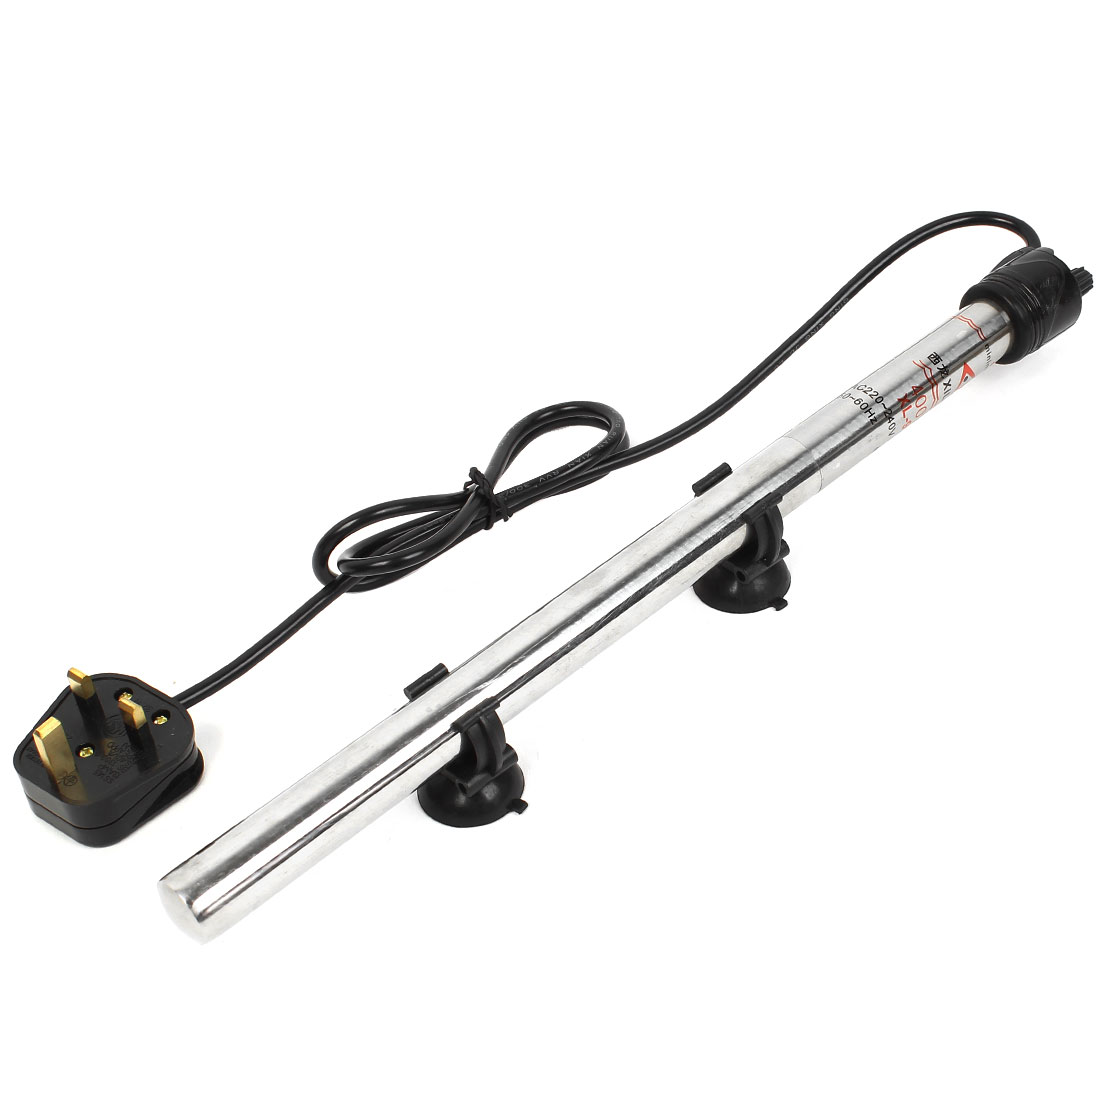 UK Plug AC 220-240V Stainless Steel Submersible Aquarium Tube Heater 400W